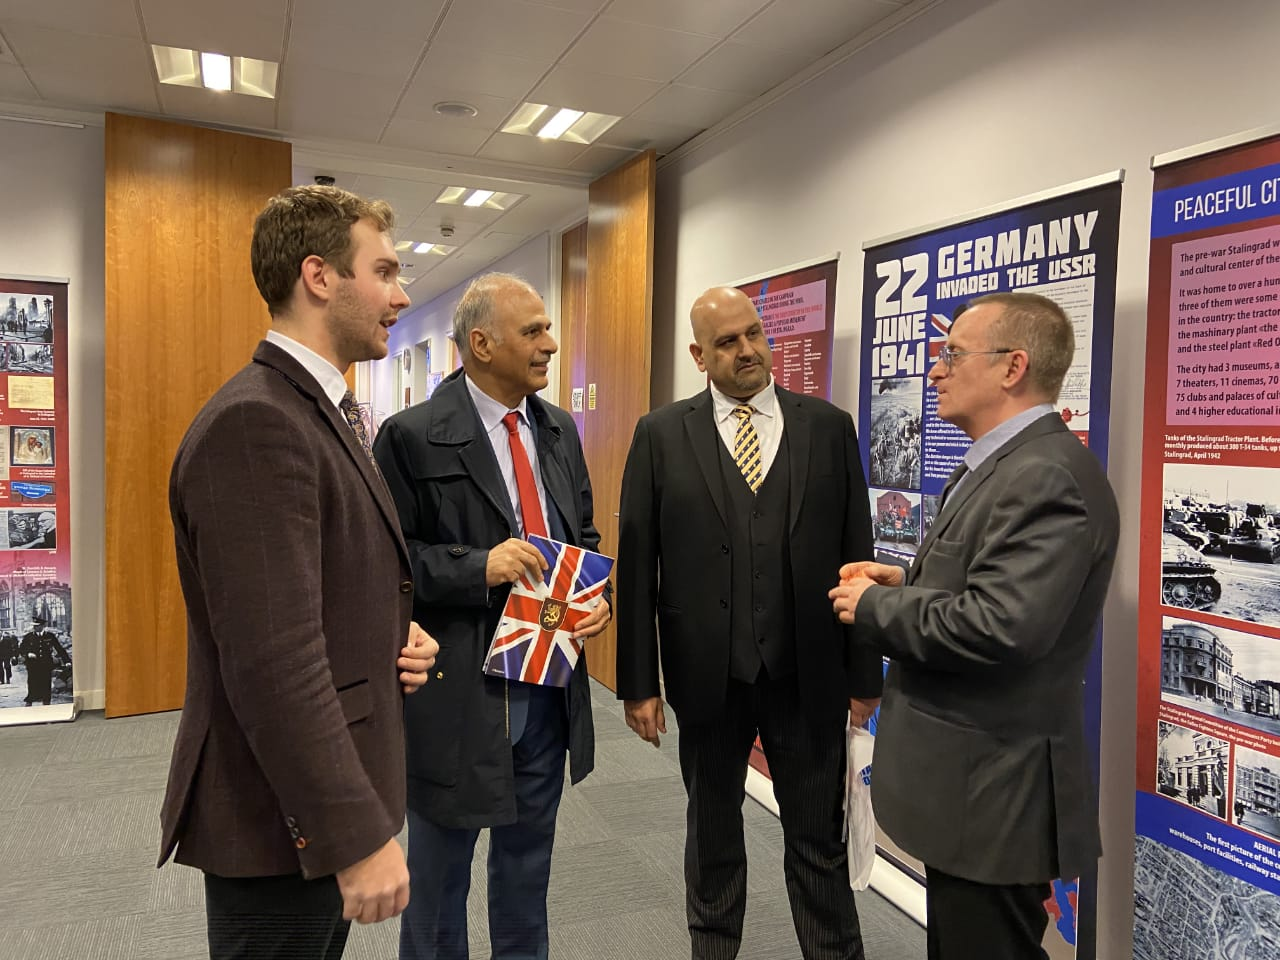 During the event, the head of the Battle of Stalingrad Foundation A. V. Bunin met with the First Secretary of the Embassy of Russia in Great Britain I. Erofeev, British politicians, representatives of the British public and Russian compatriots living in the UK. A.V. Bunin thanked the staff of the Embassy and Rossotrudnichestvo for their help in organizing the activities of the project and expressed hope for continued successful cooperation.